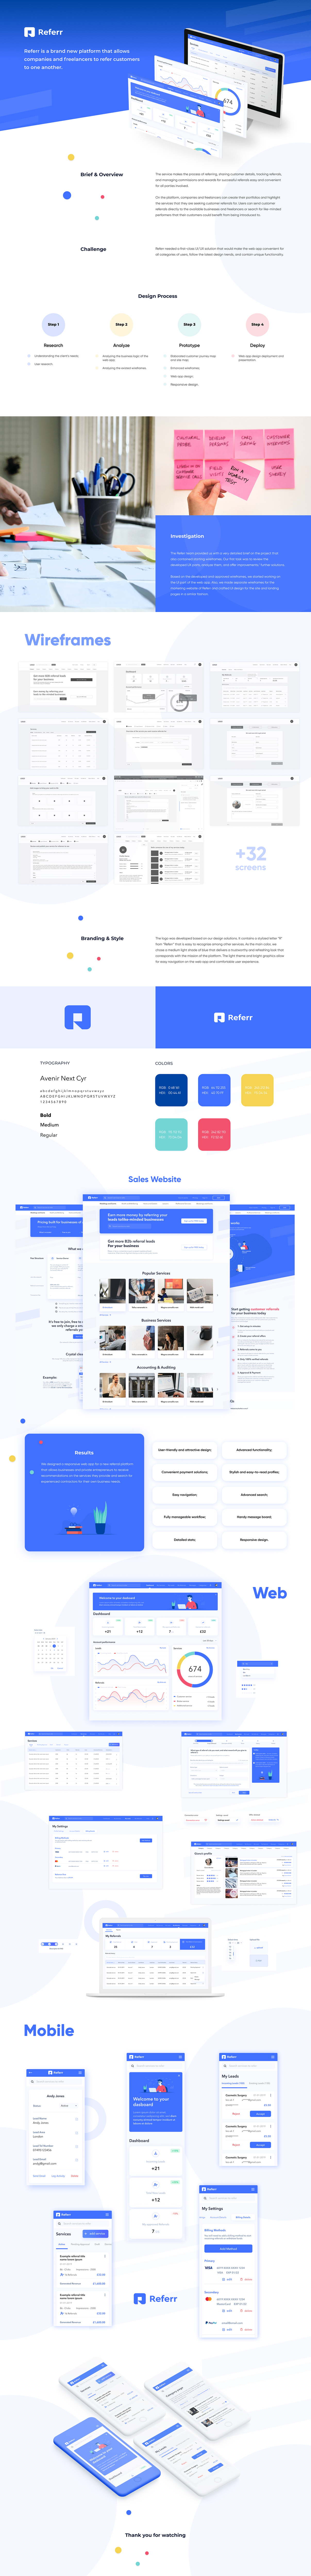 design Interface product research Responsive UI ux web app wireframes